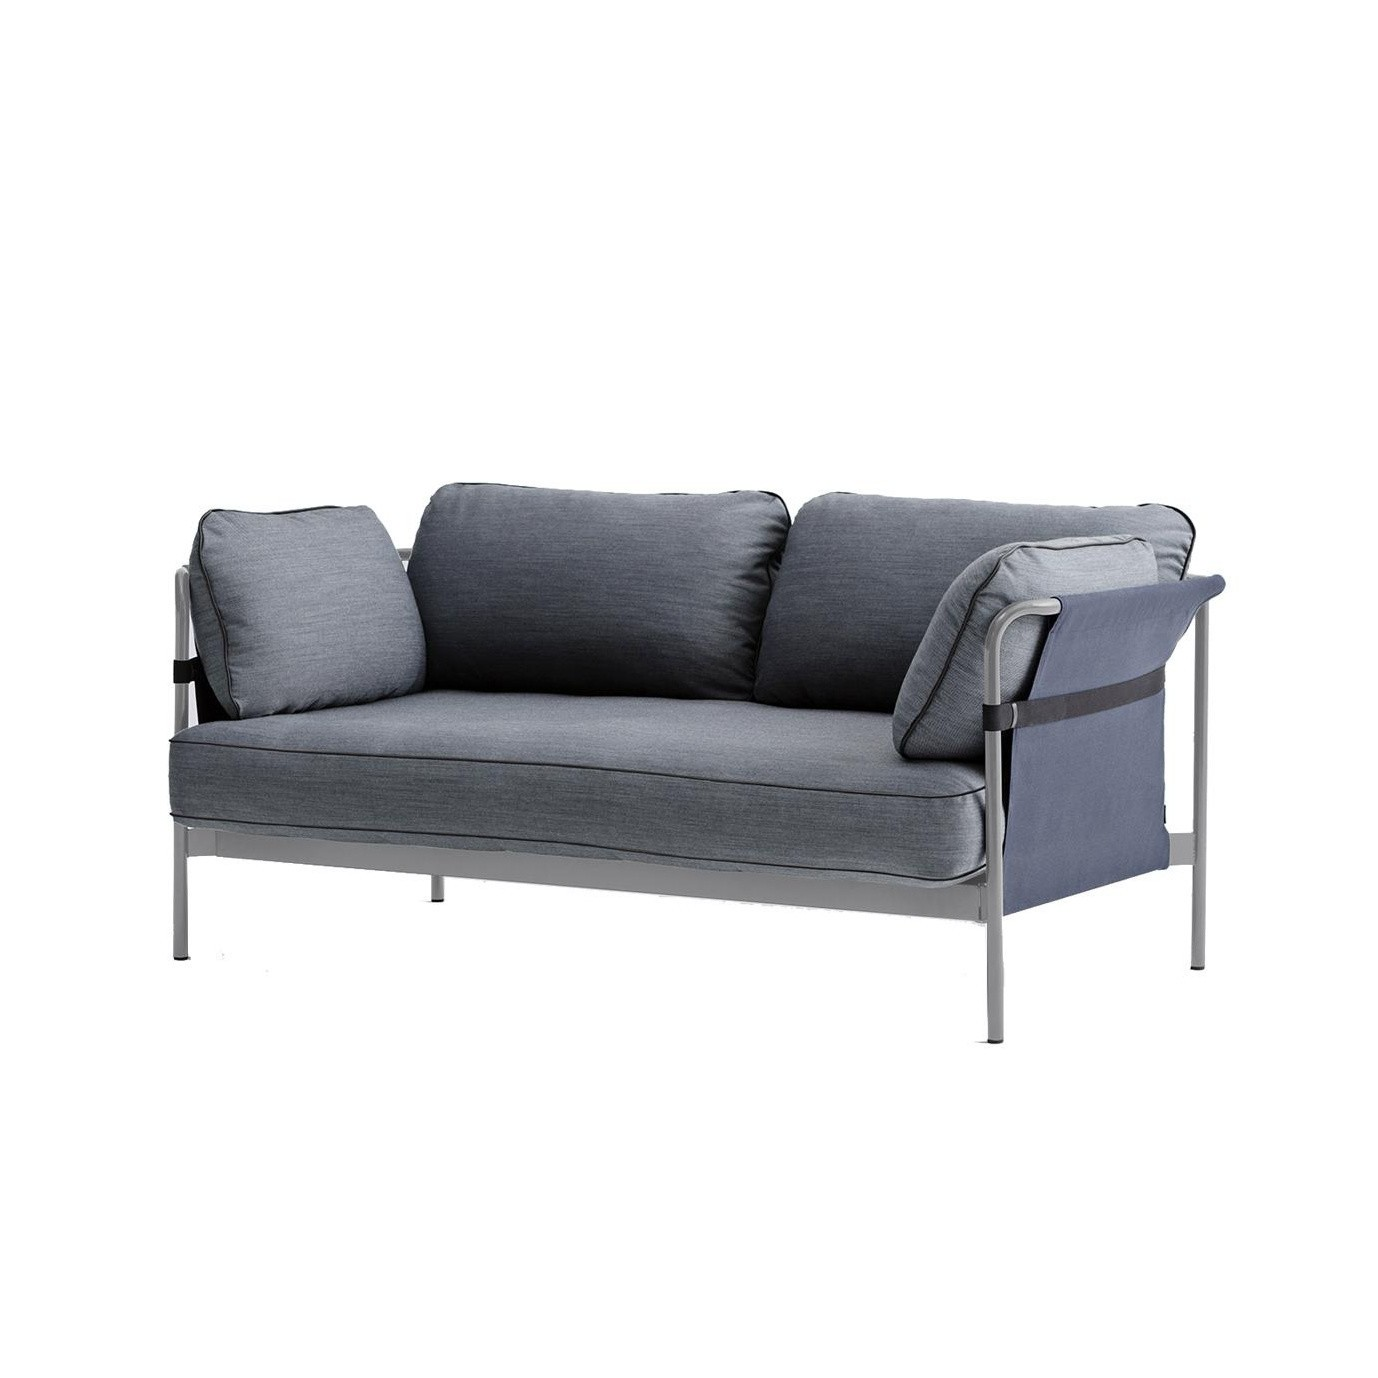 2 Seater Outdoor Sofa Can 2 Seater Sofa Frame Dusty Grey